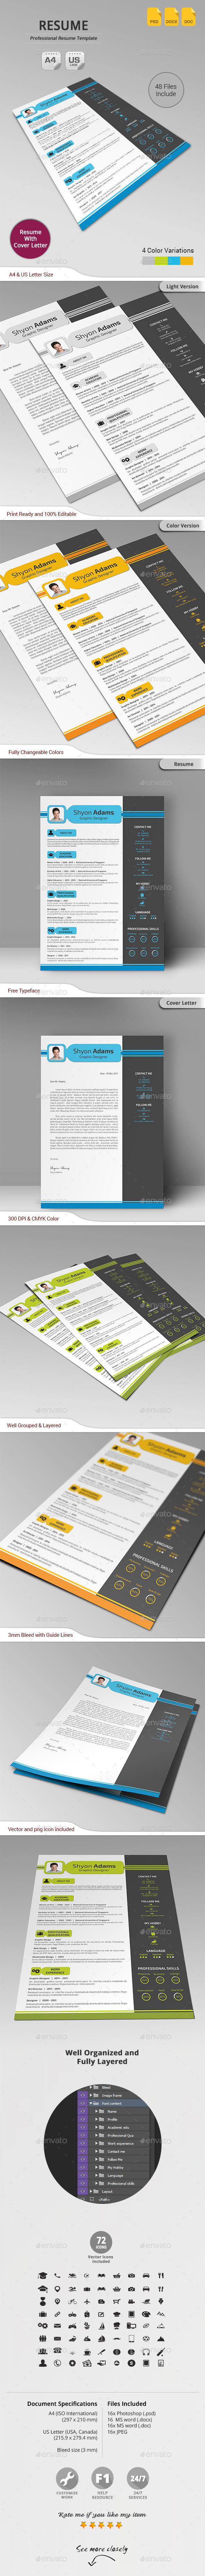 GraphicRiver Resume 10950366